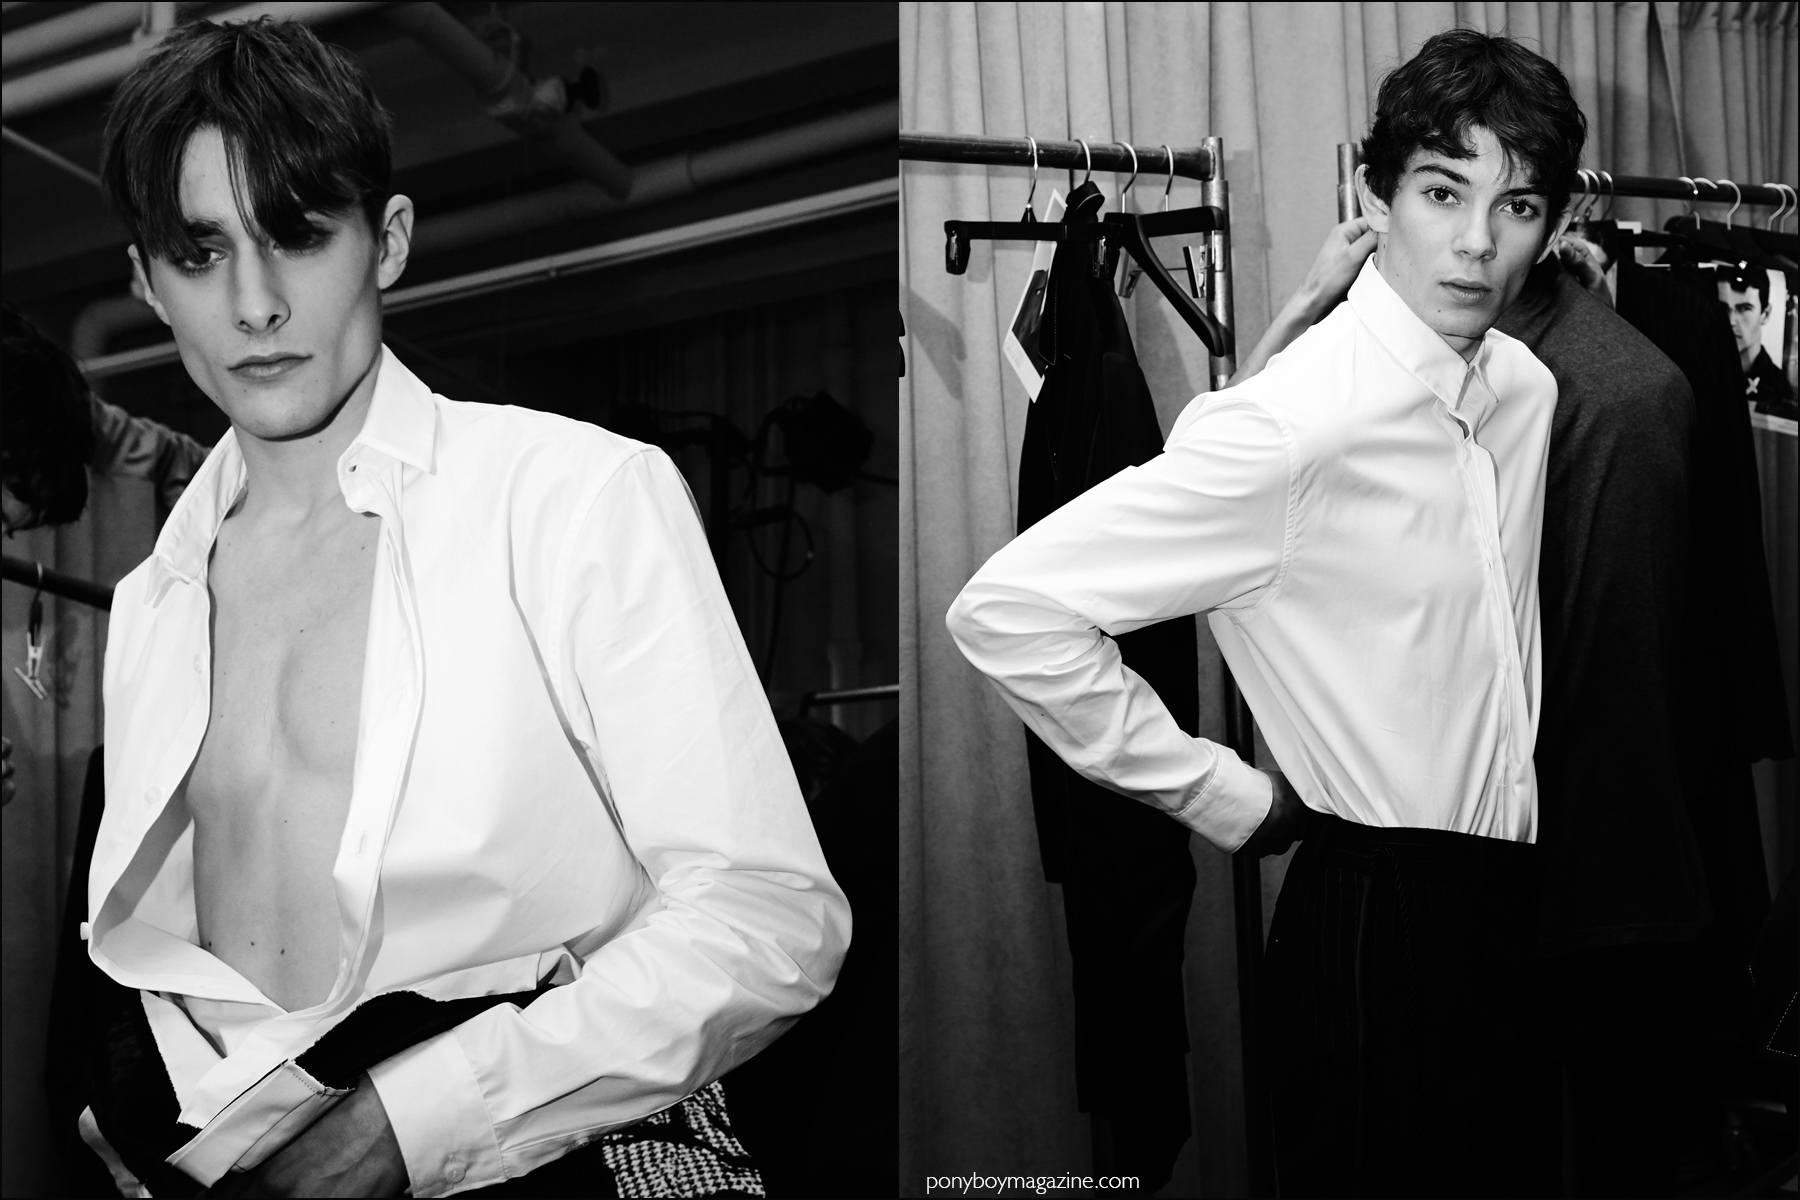 Models Maxence Danet-Fauvel and Matthieu Gregoire photographed getting dressed, backstage at Kenneth Ning F/W16 menswear show. Photography by Alexander Thompson for Ponyboy magazine NY.